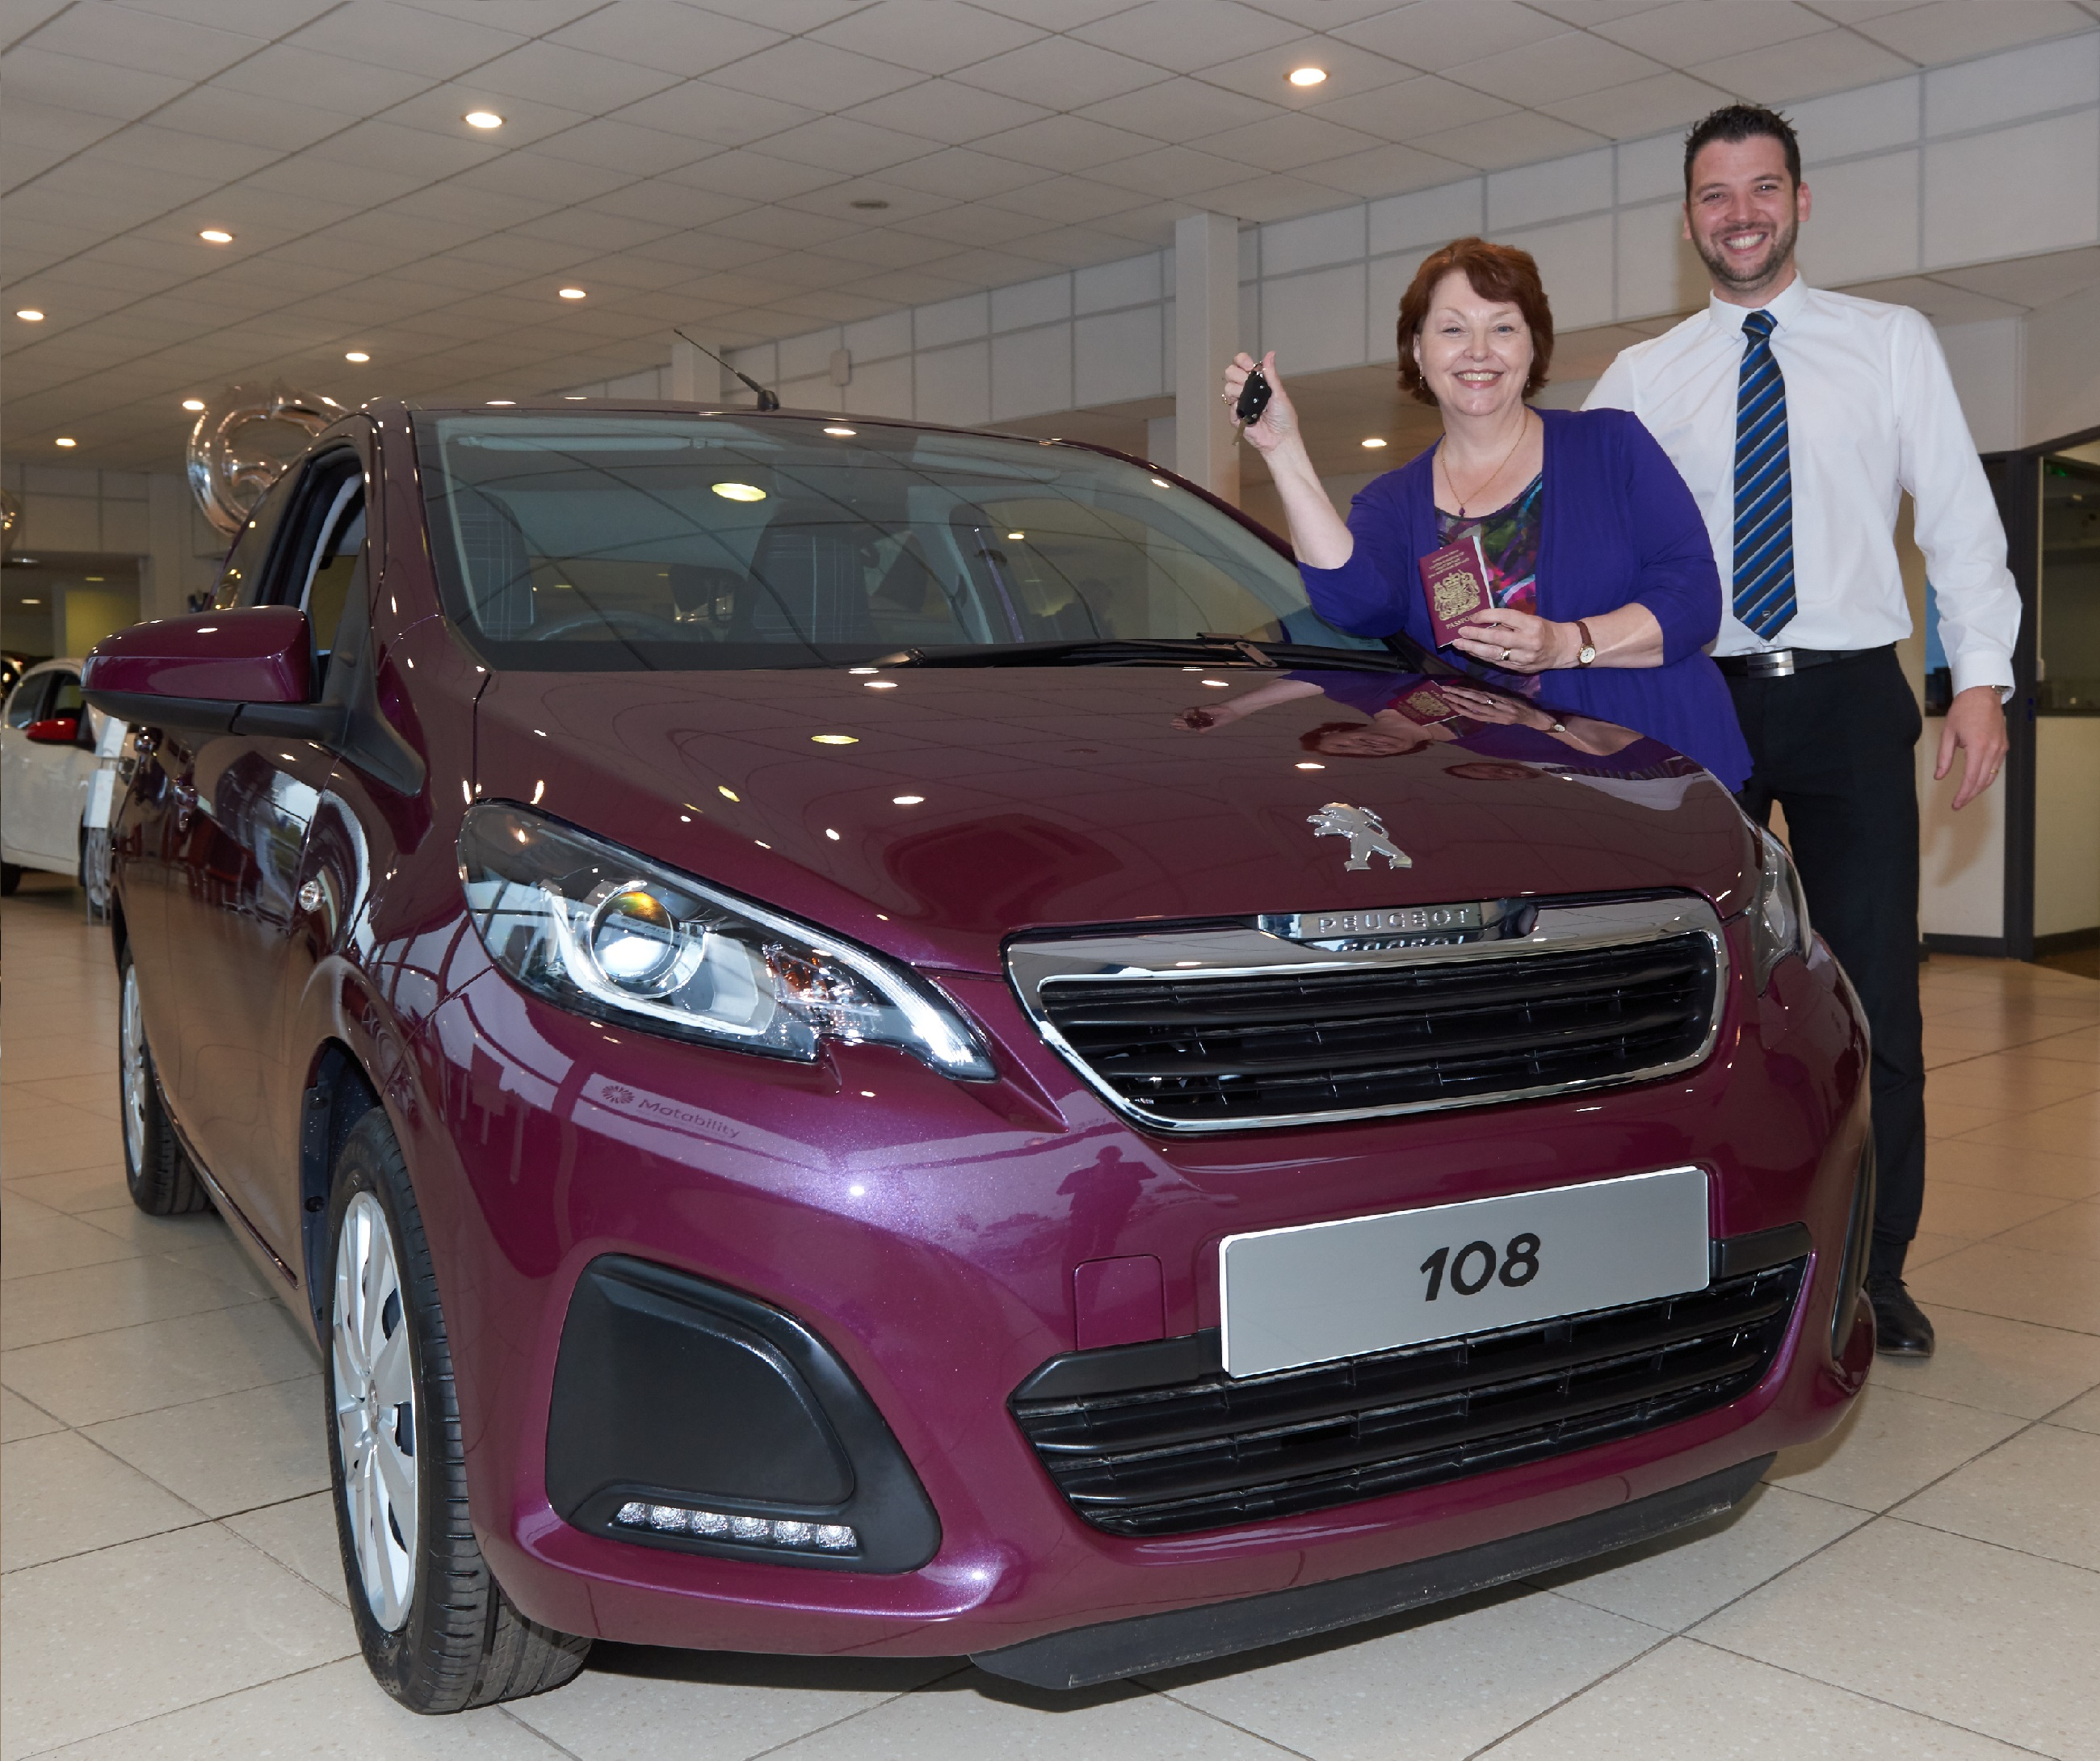 Banbury Peugeot helps customers go on holiday of a lifetime